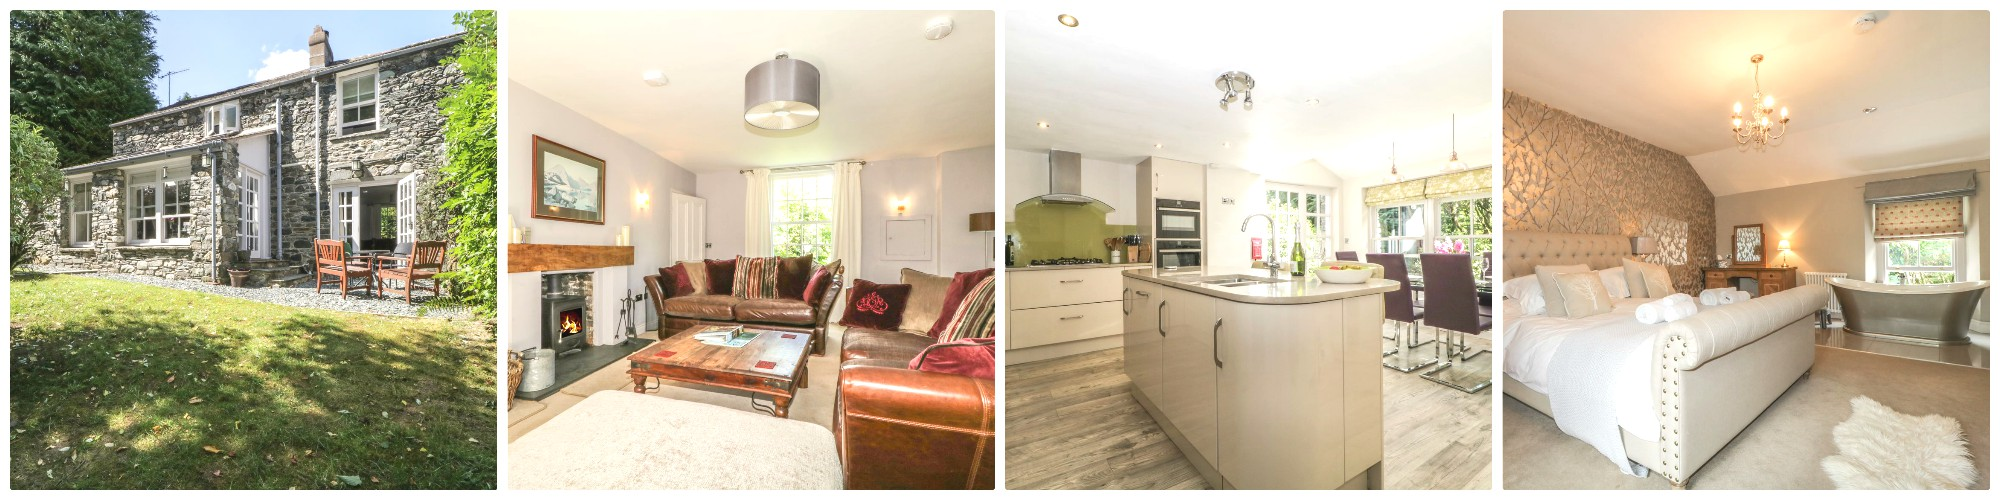 This traditional cottage has been renovated to include a lot of Wow factors including a roll-top free standing bath in one of the bedrooms